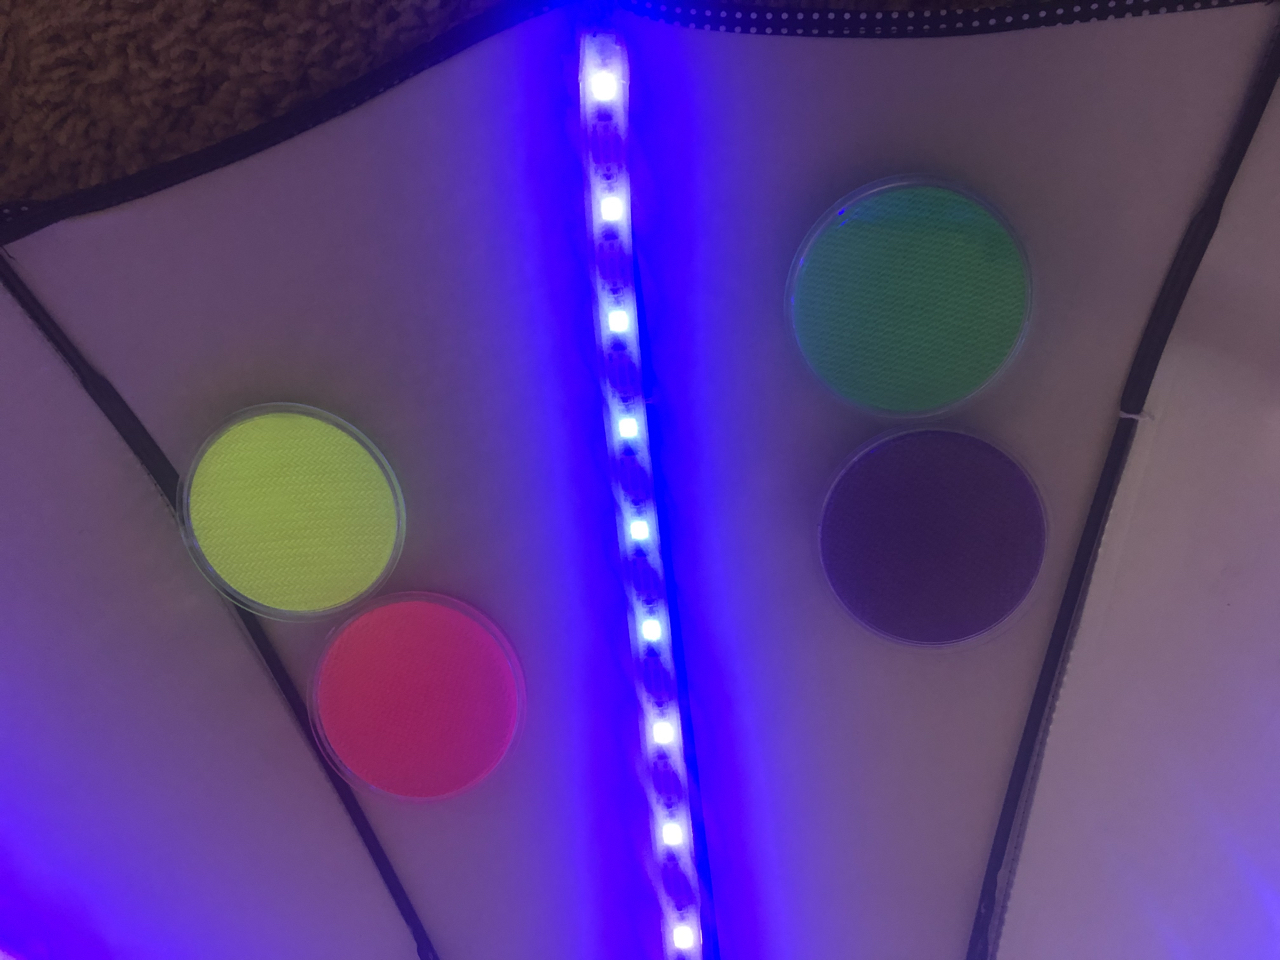 led_strips_17_pigments.jpg